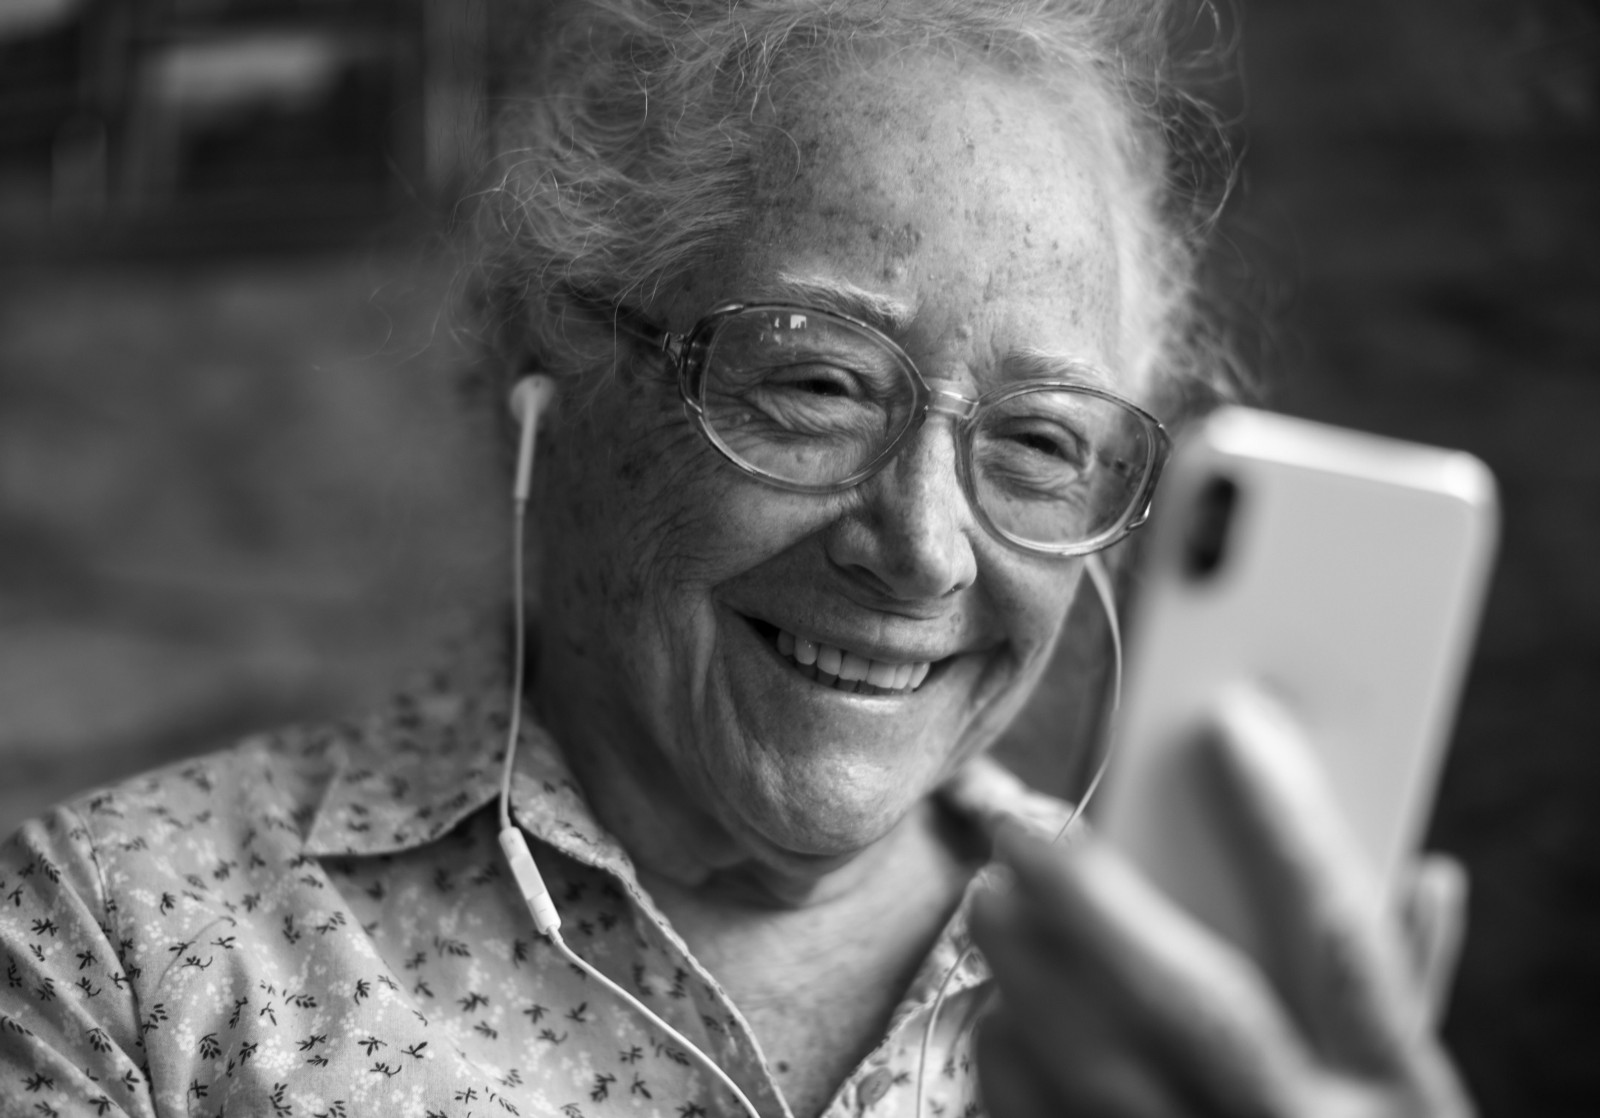 An older person wearing ear-pod headphones smiles while looking at their smartphone. Photo credit: Rawpixel via Unsplash